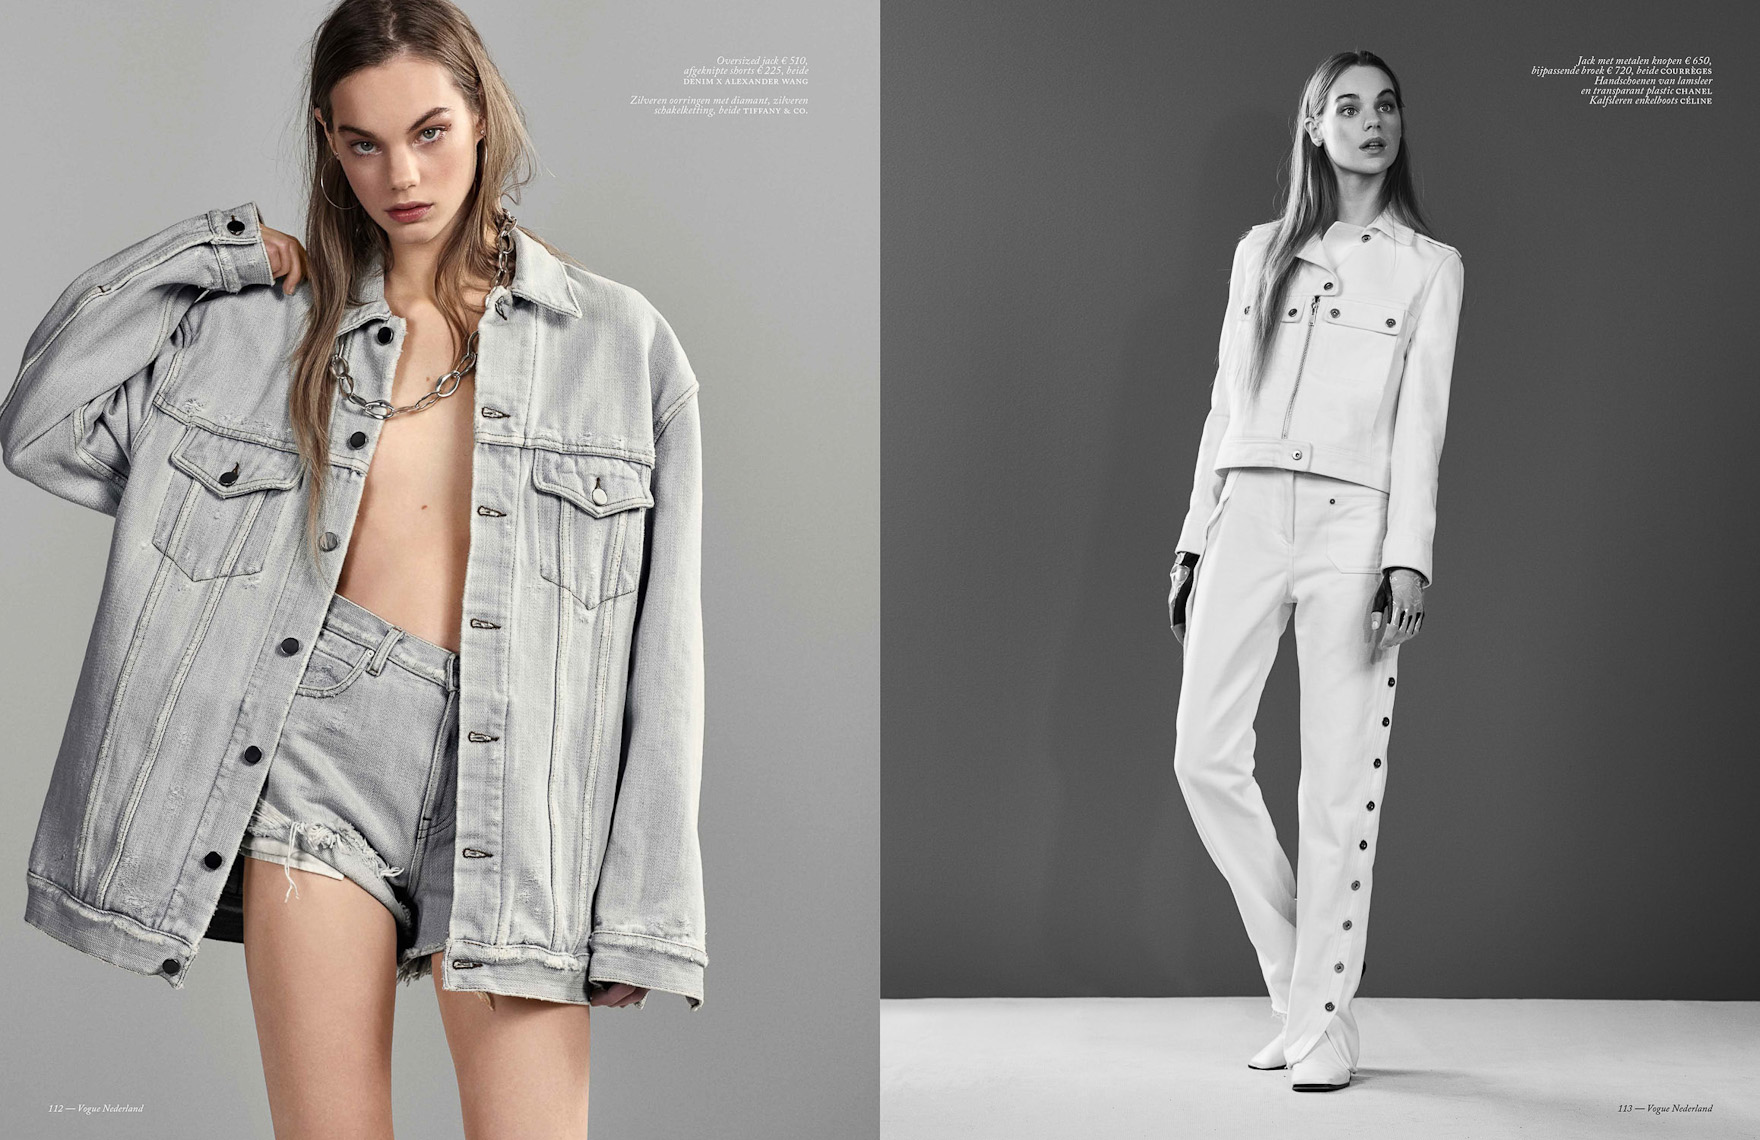 Witman Kleipool | Marc de Groot | VogueNL - Estella Boersma | Lay-out Spreads 02